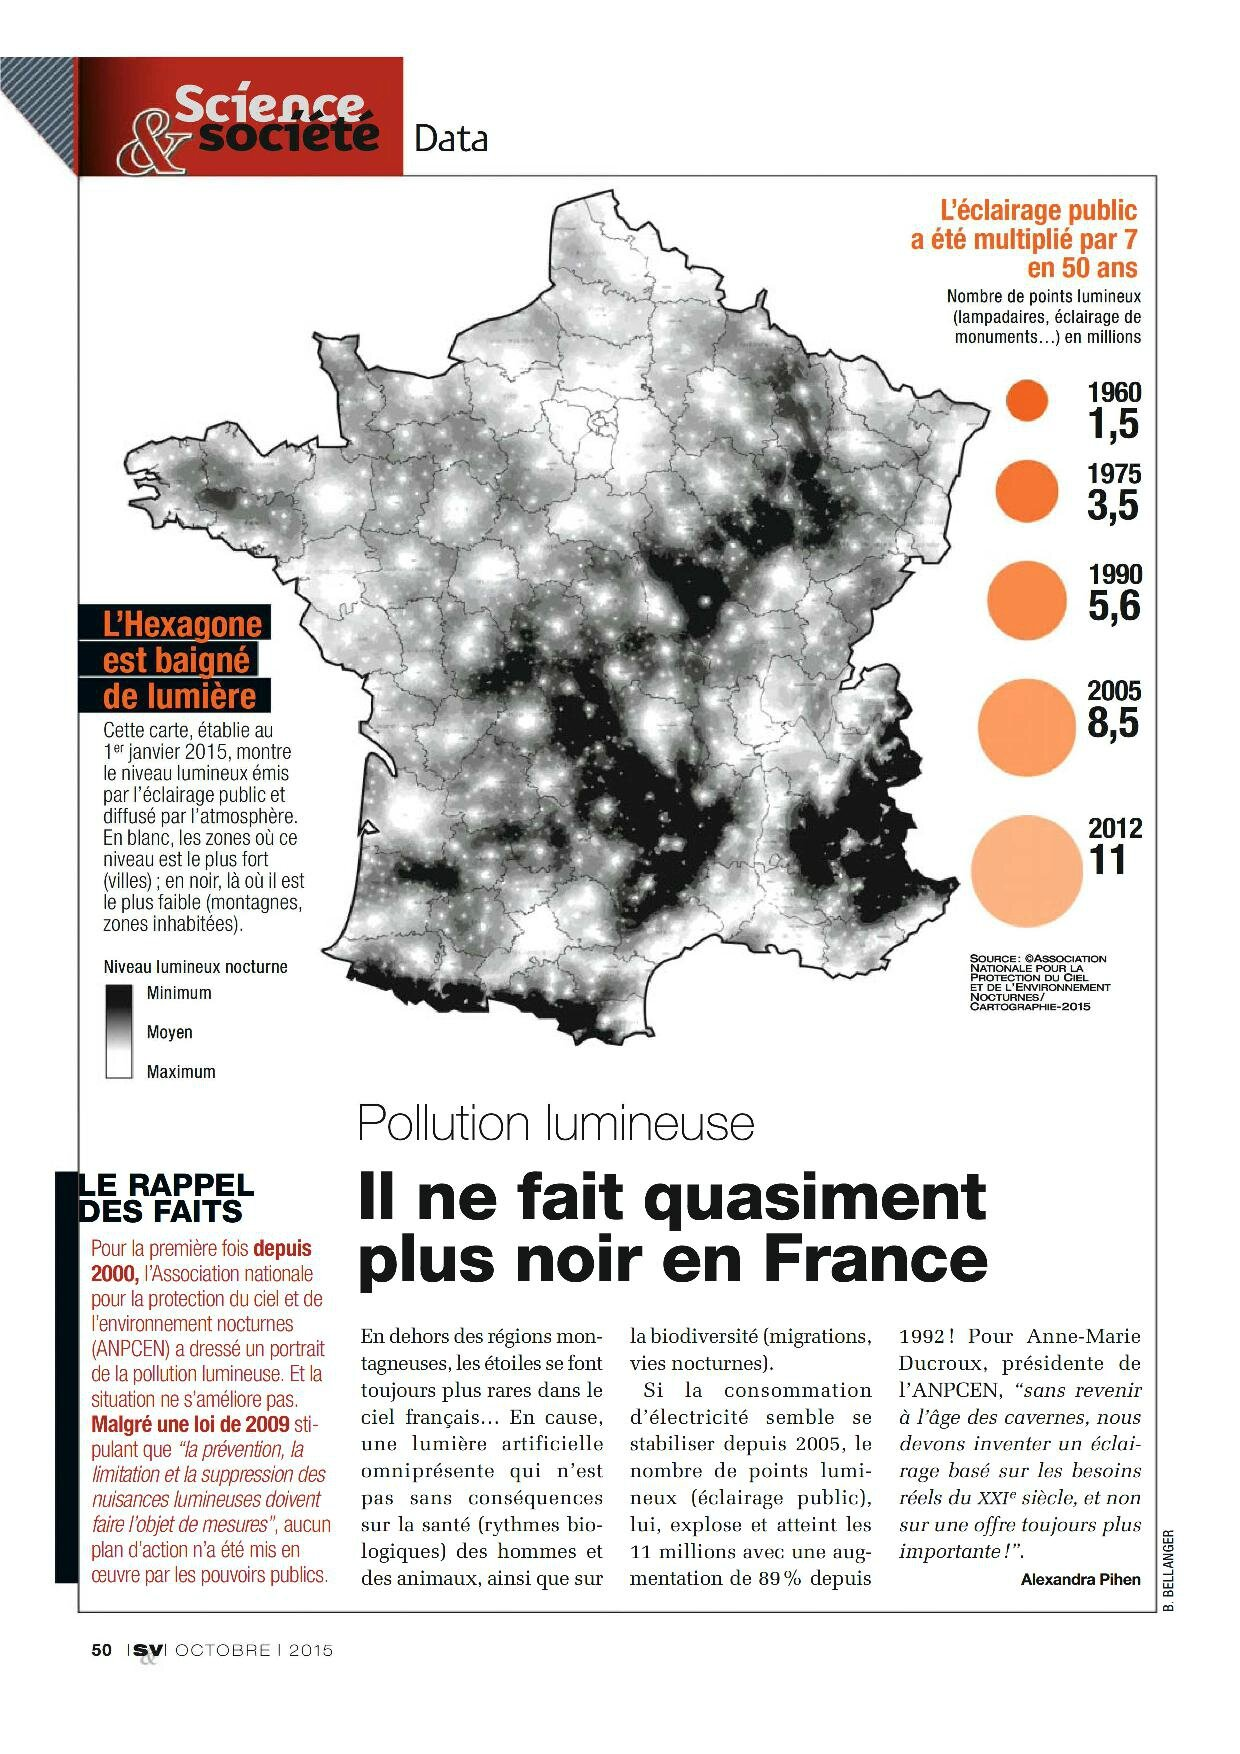 pollution lumineuse-Science & Vie 2015-10